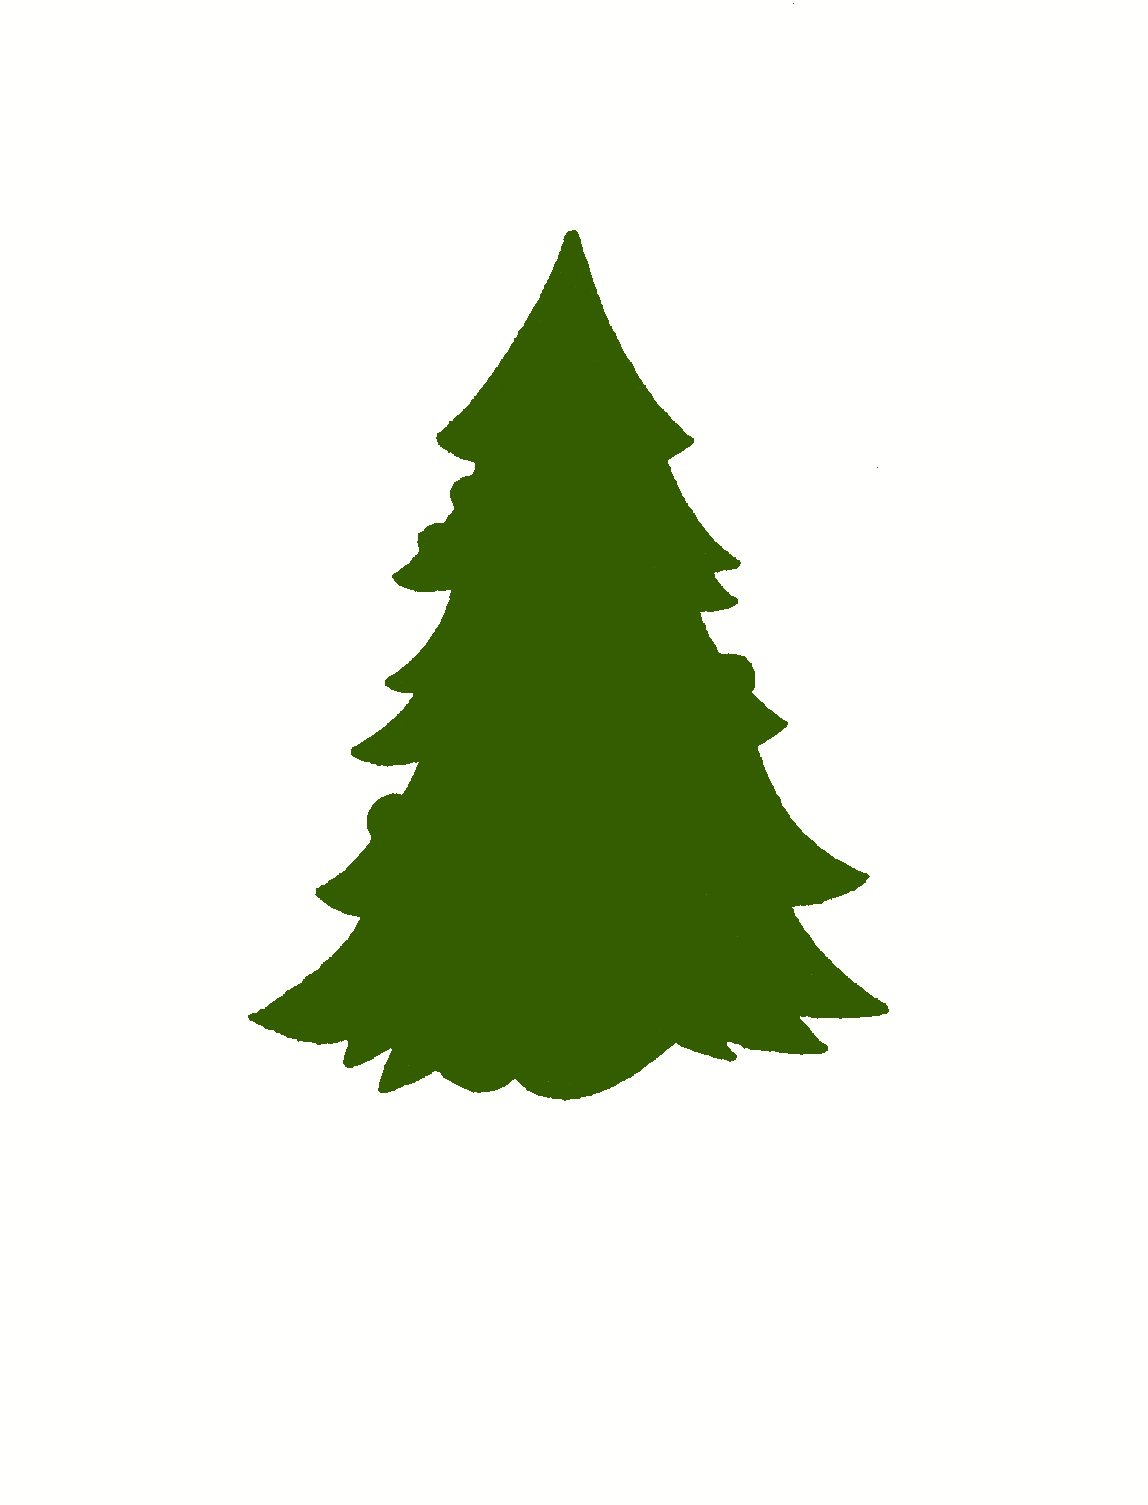 Green Christmas Tree Silhouette Clipart#2033413.